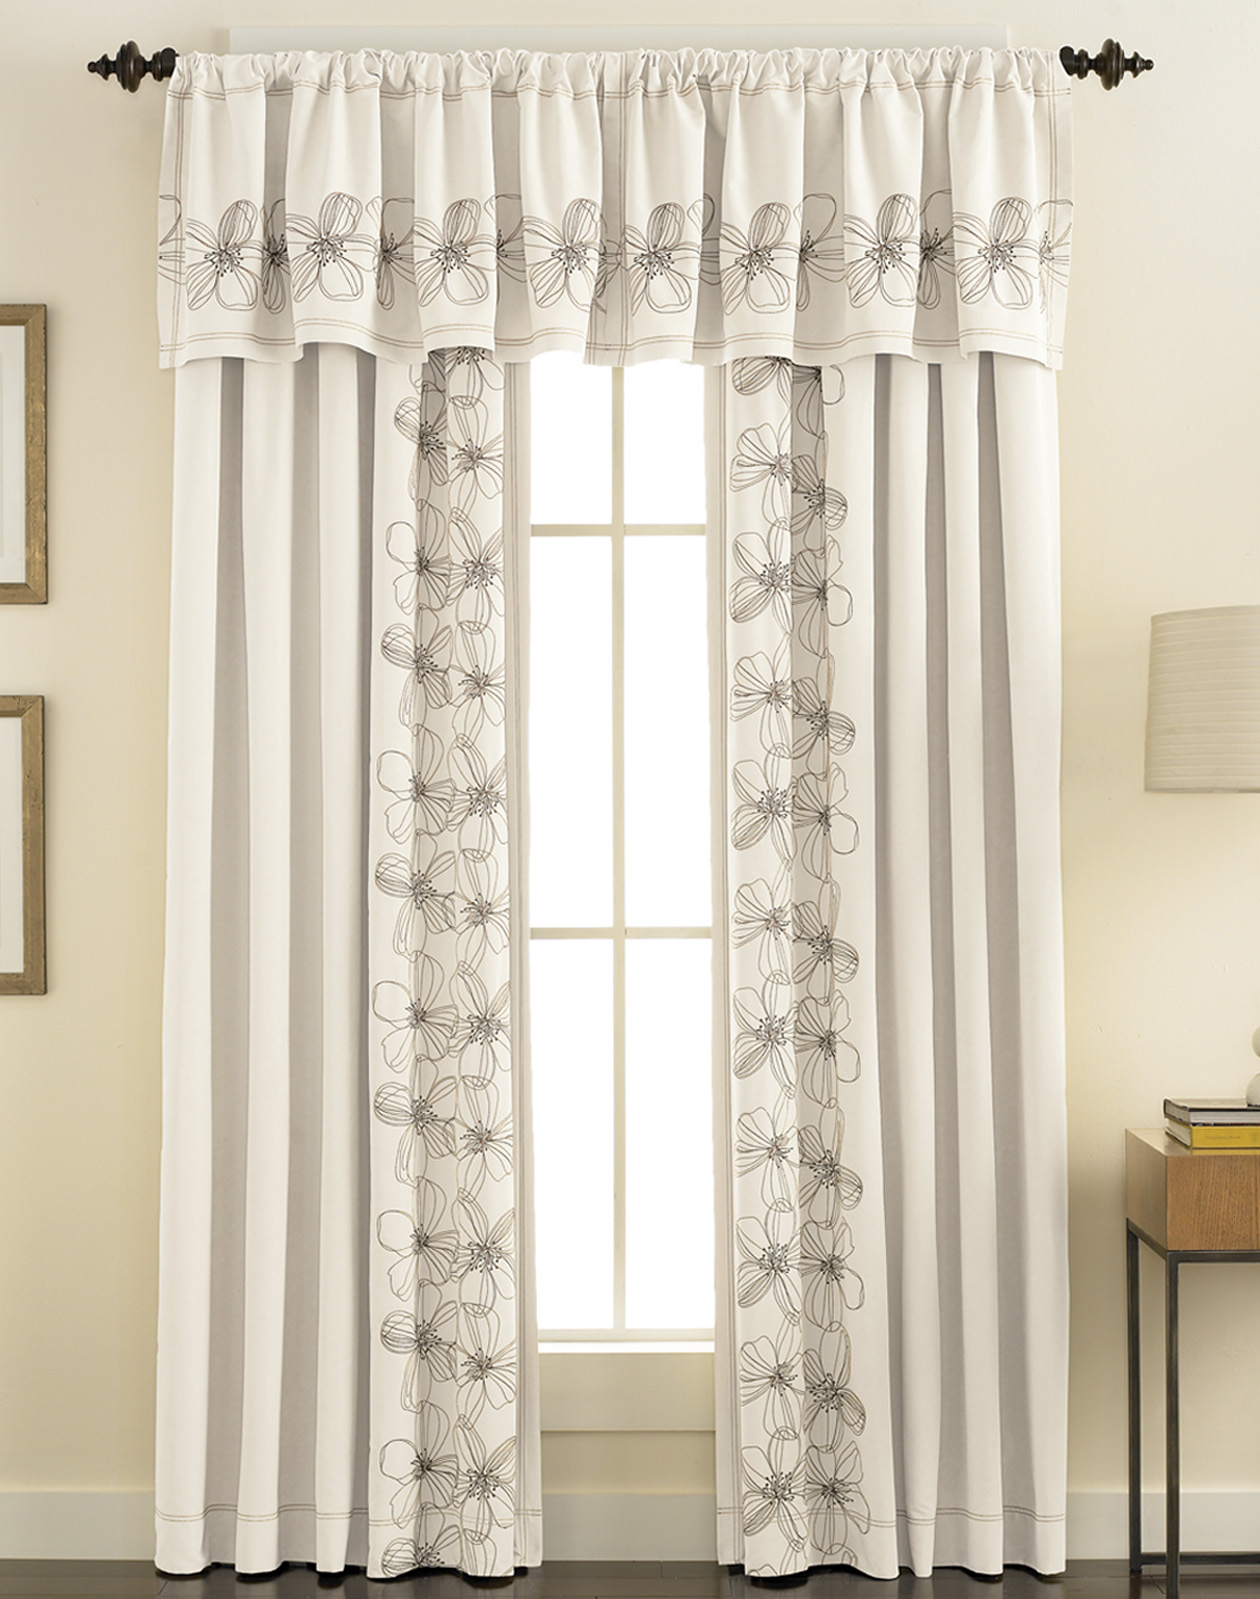 Windows Drapes | Window Drapes | Drapes for Living Room Windows